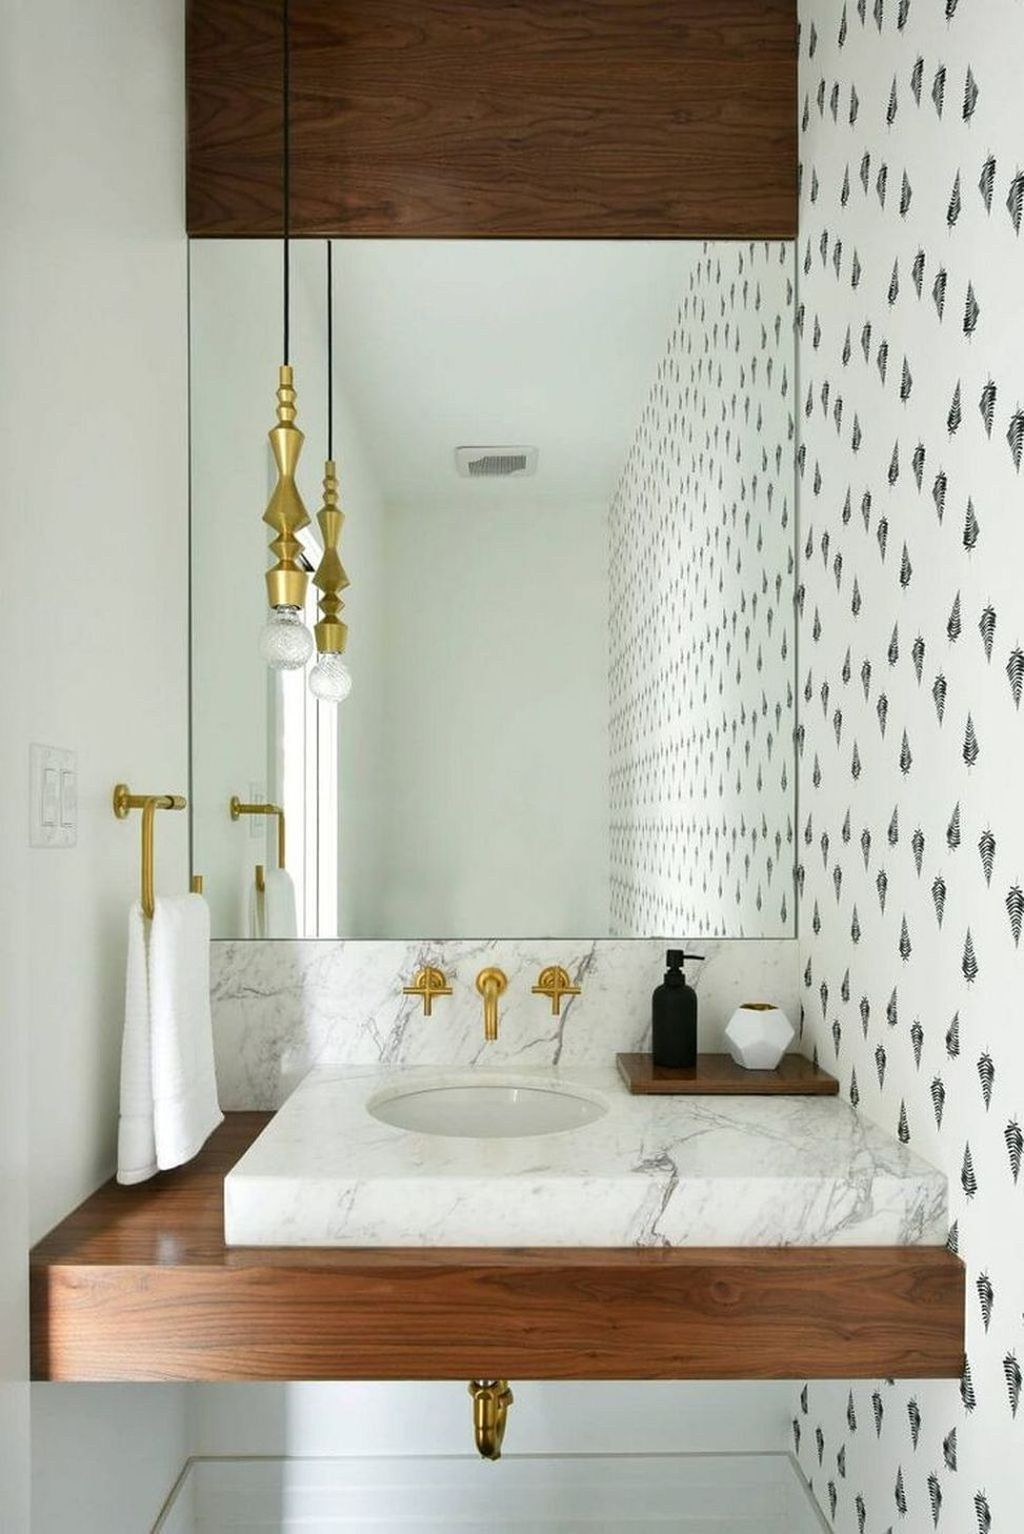 20 Elegant Small Powder Room Vanity Ideas Allowed For You To My